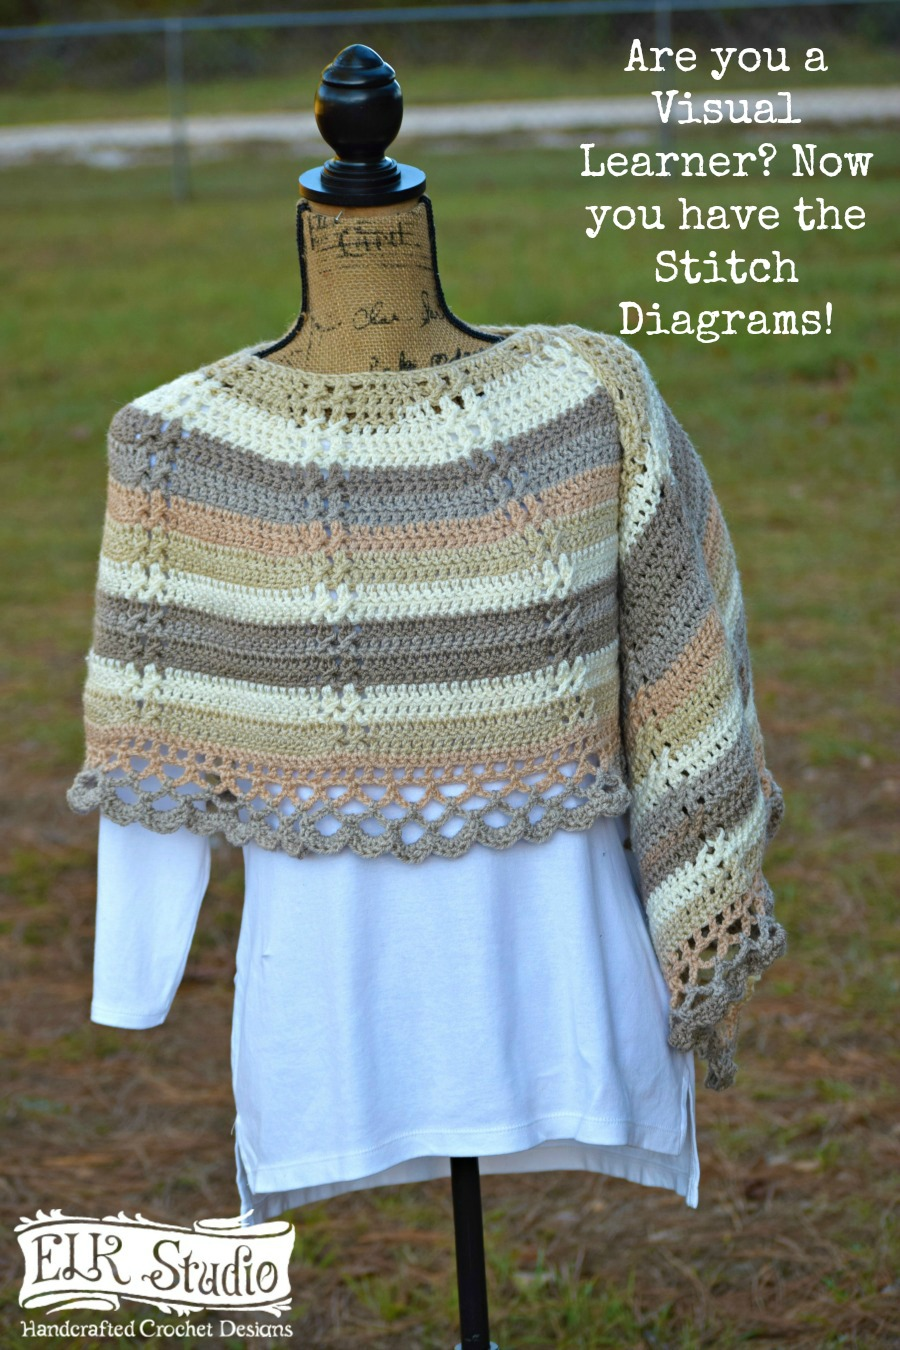 delightfully-southern-shawl-by-elk-studio-a-free-crochet-pattern-includes-stitch-diagrams